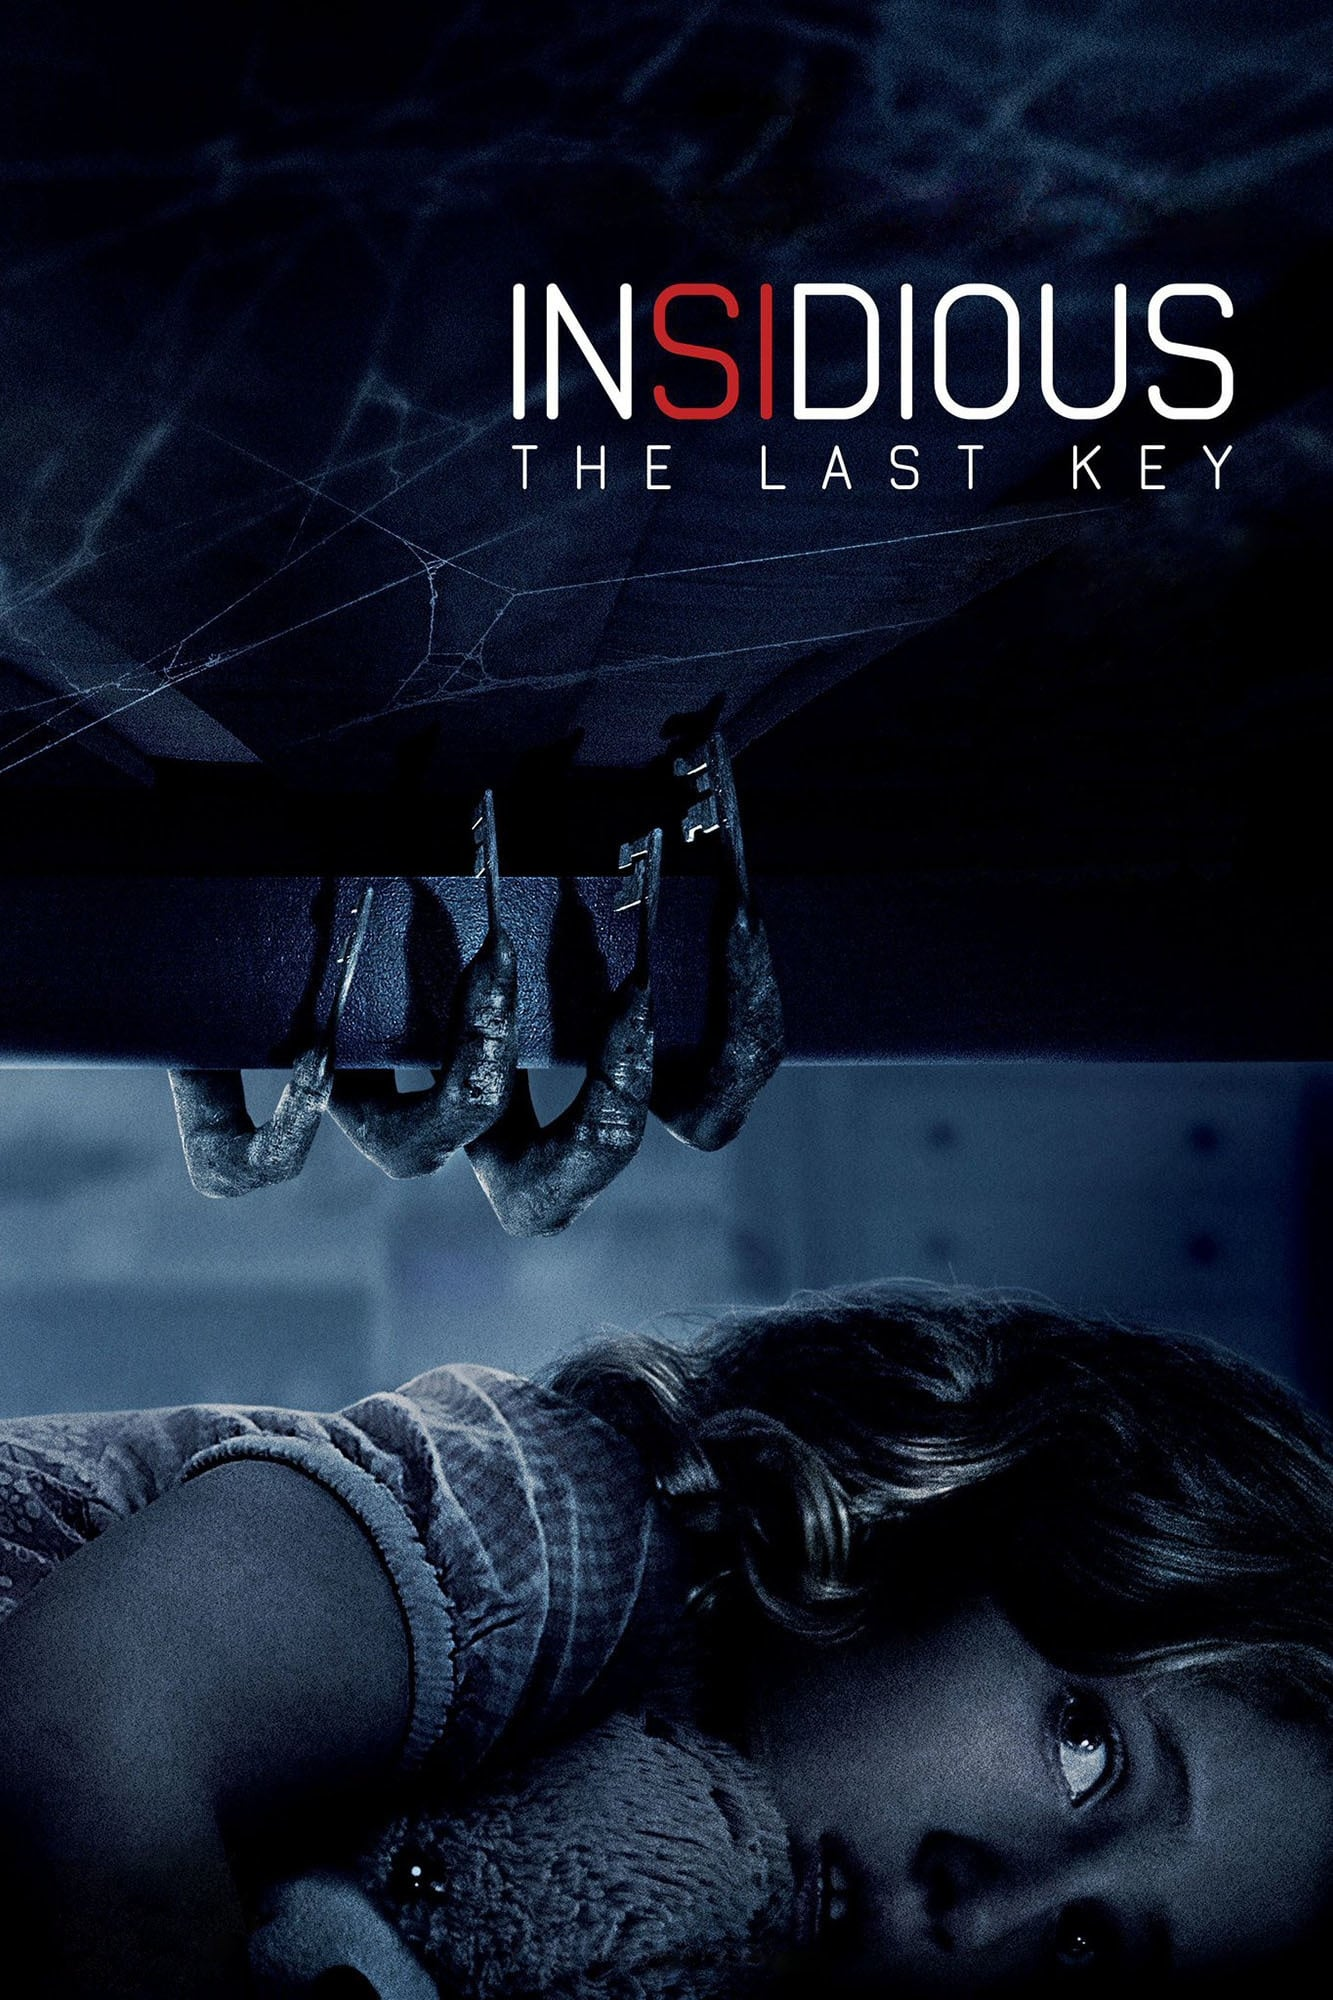 image for Insidious: The Last Key